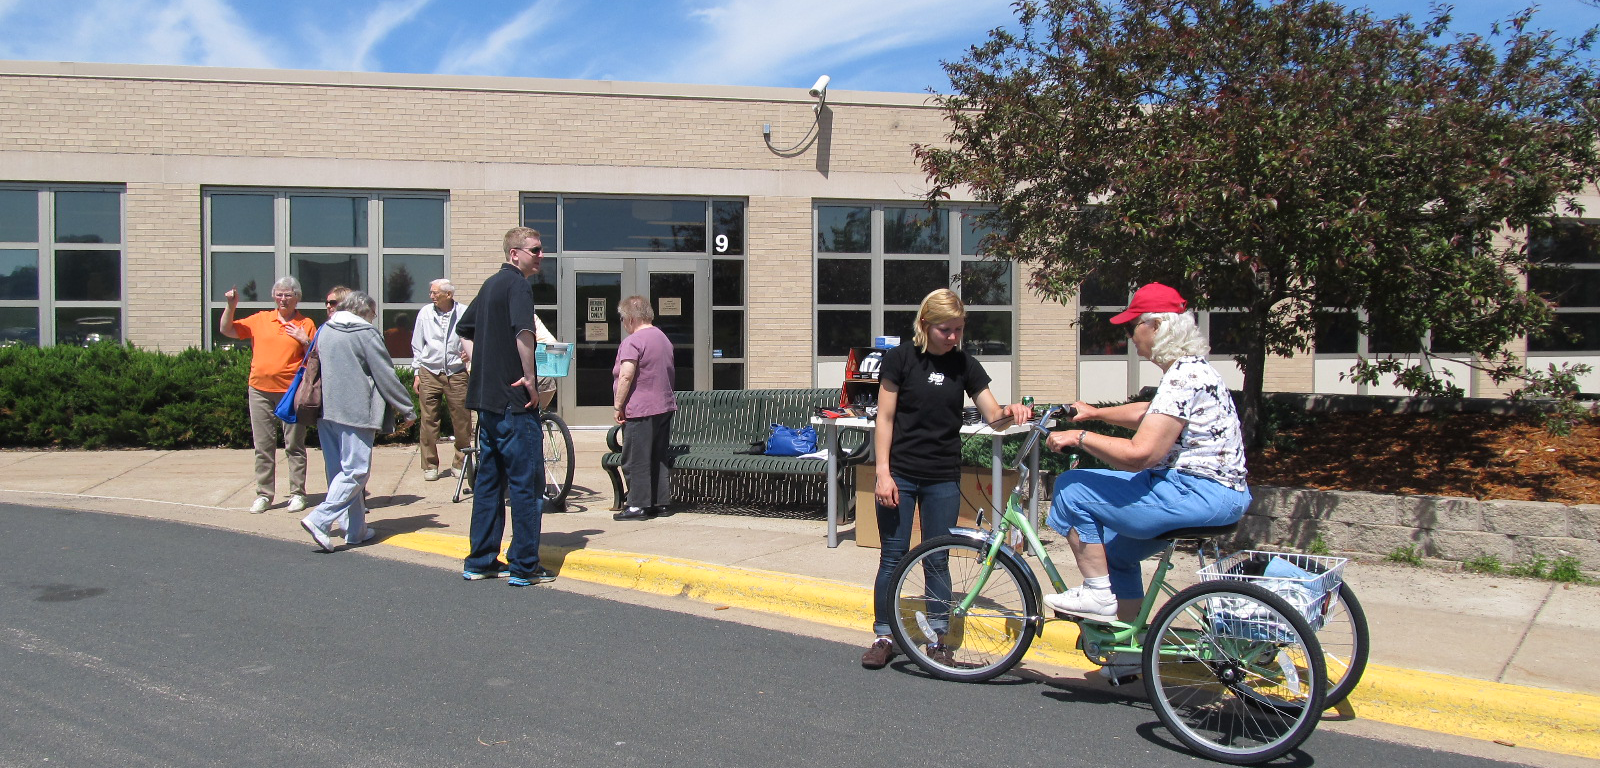 Seniors biking with accessible bike models